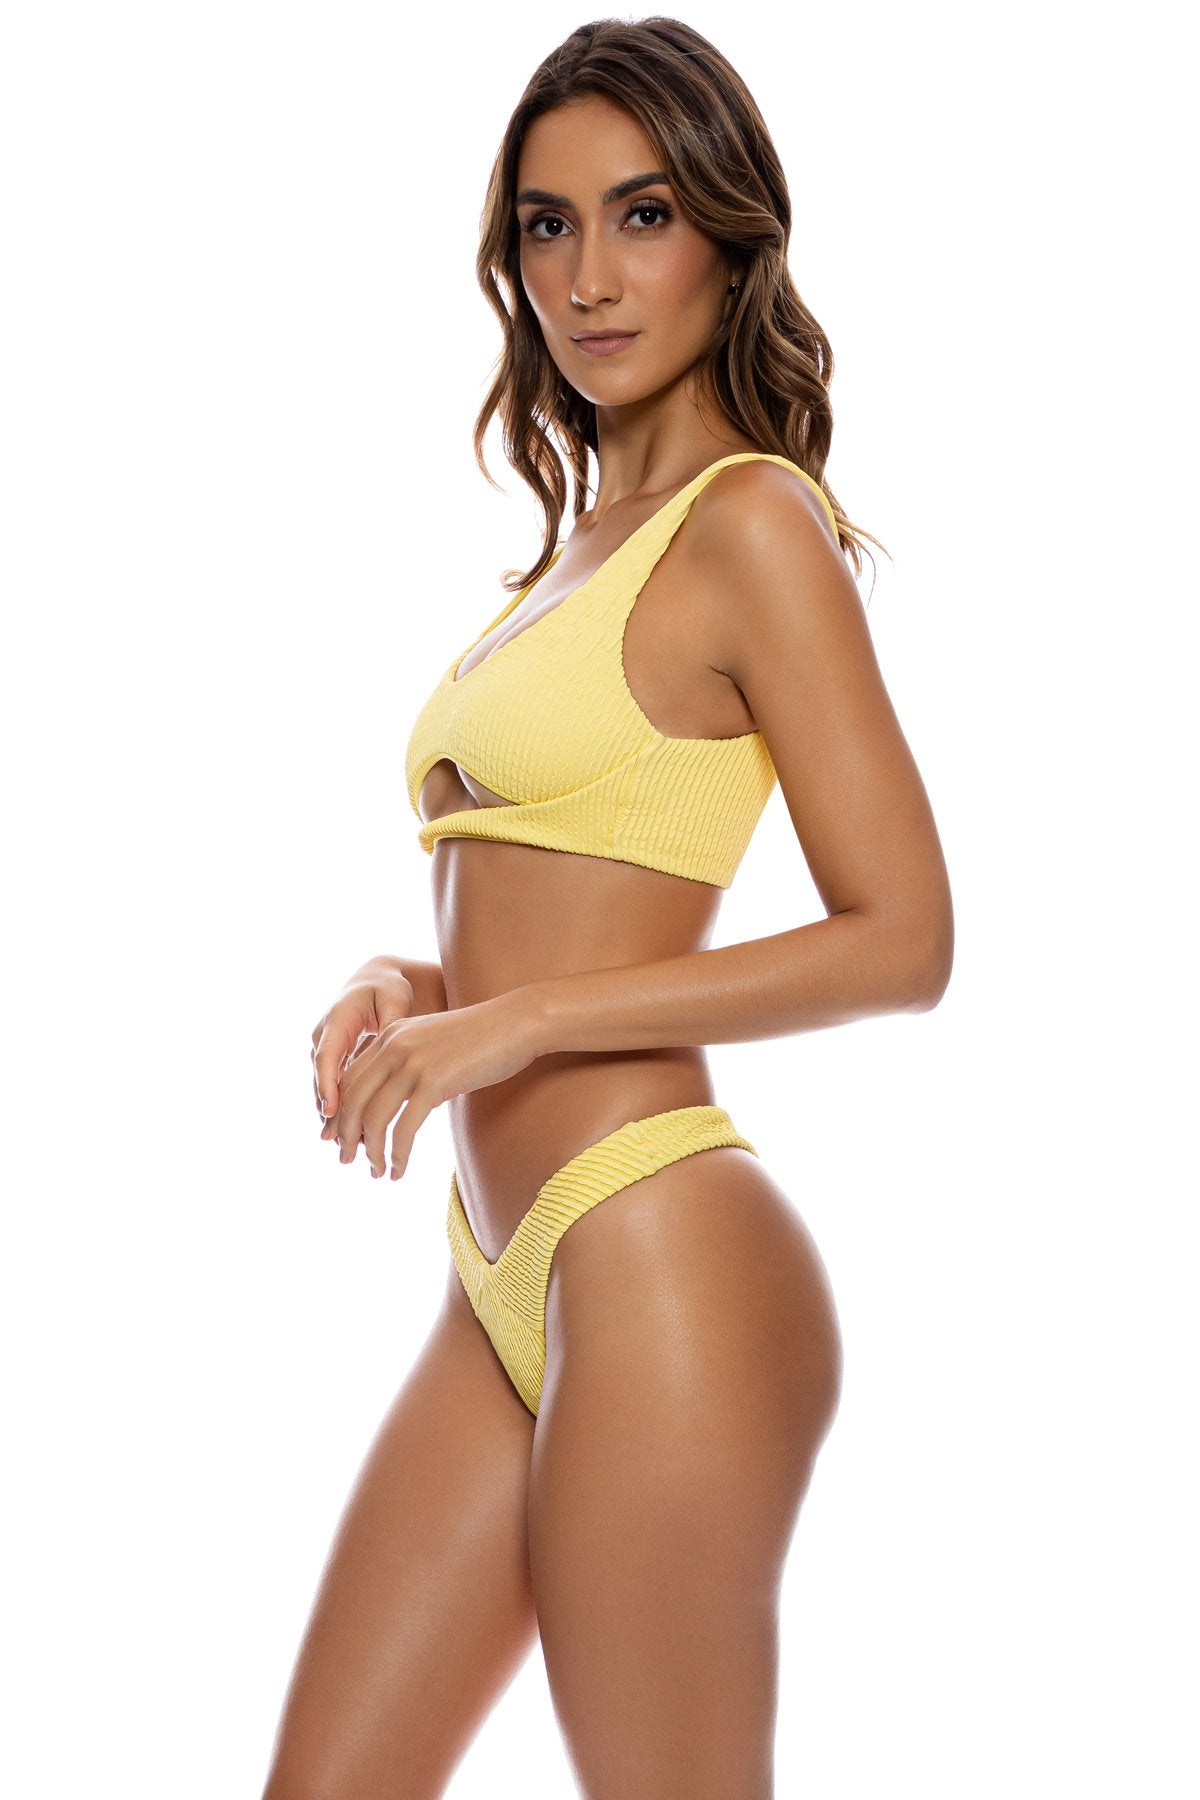 PURA CURIOSIDAD - Open Front Bralette & Tab Side High Leg Thong Bottom • Sun Rays